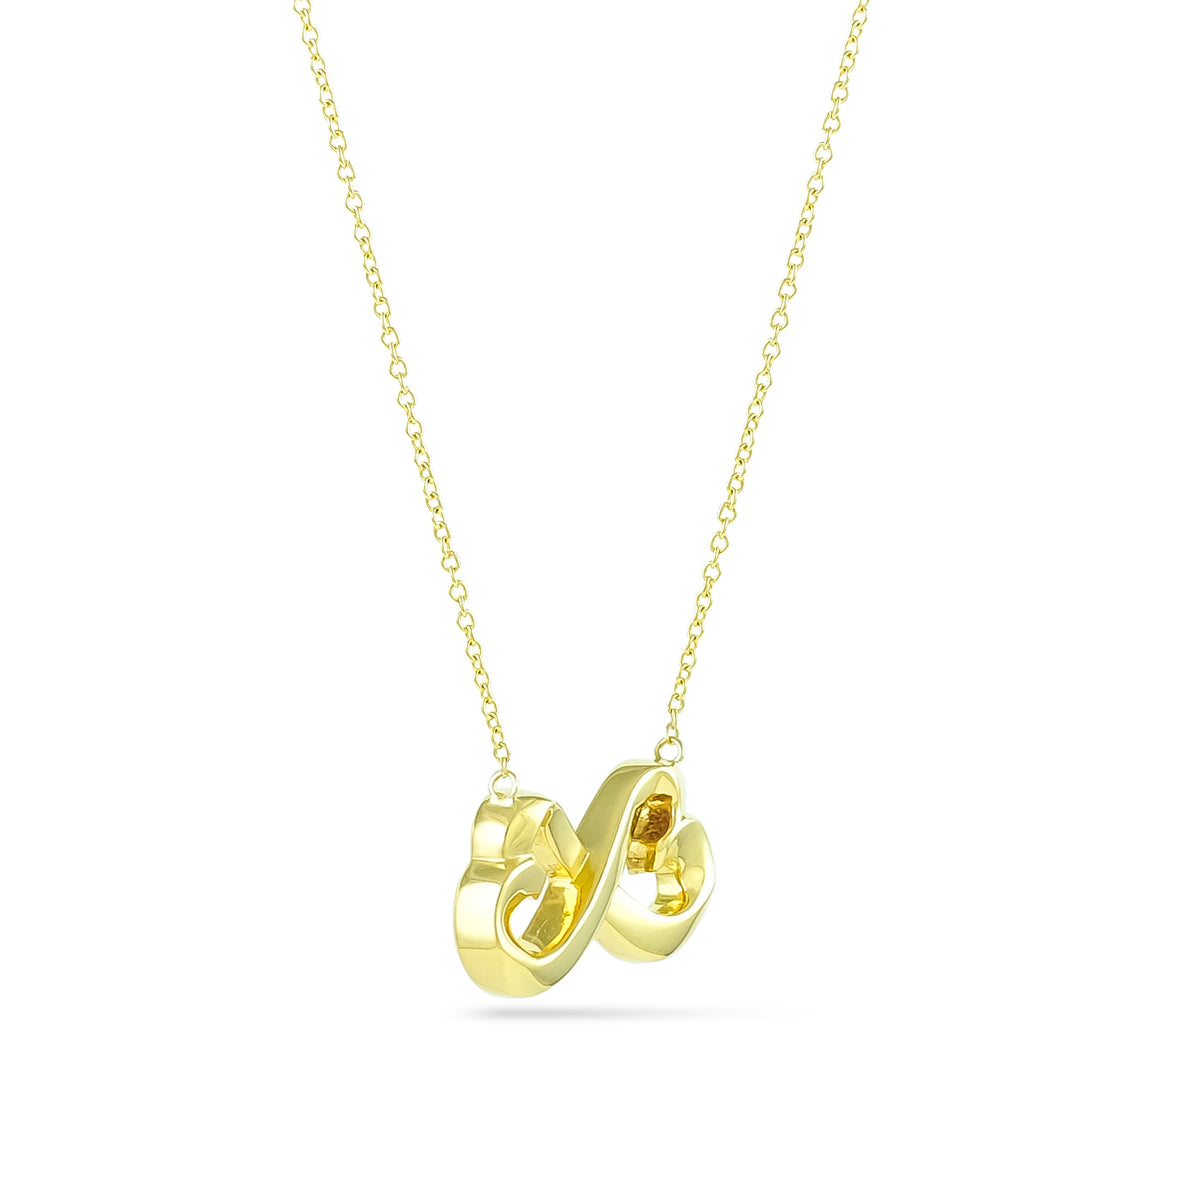 Tiffany & Co. 18ct Yellow Gold Paloma Picasso Double Loving Heart Necklace